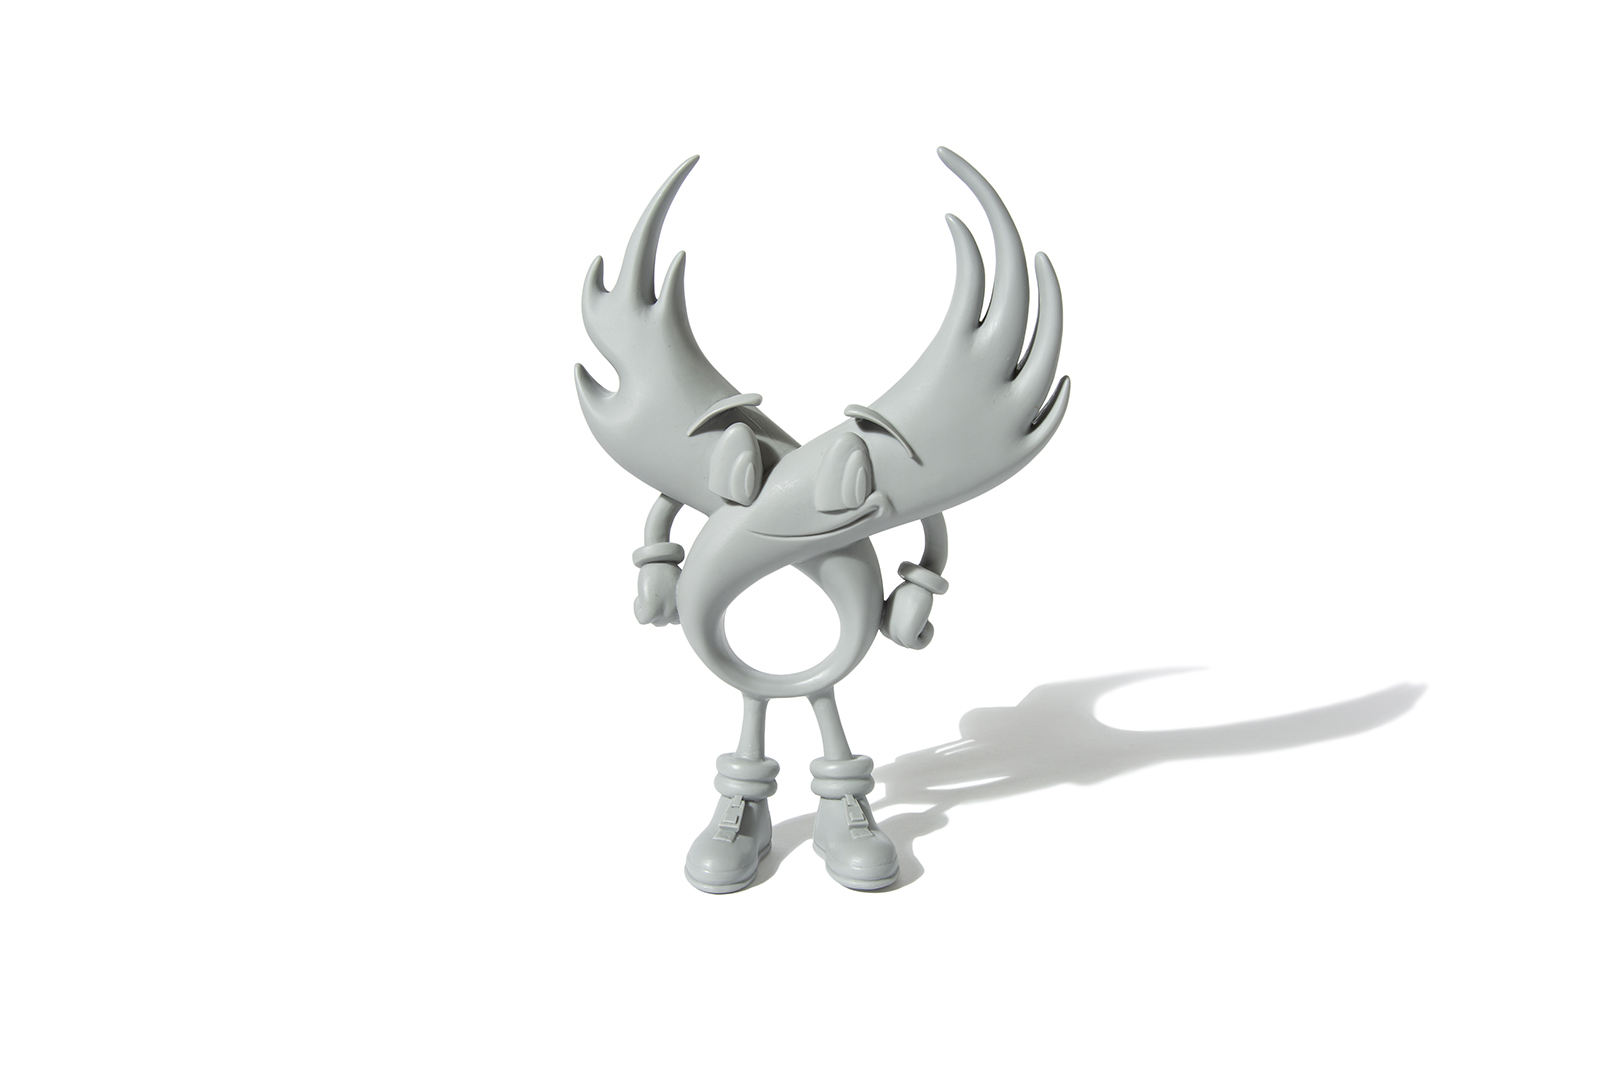 wing-guy-toy-gray_p1